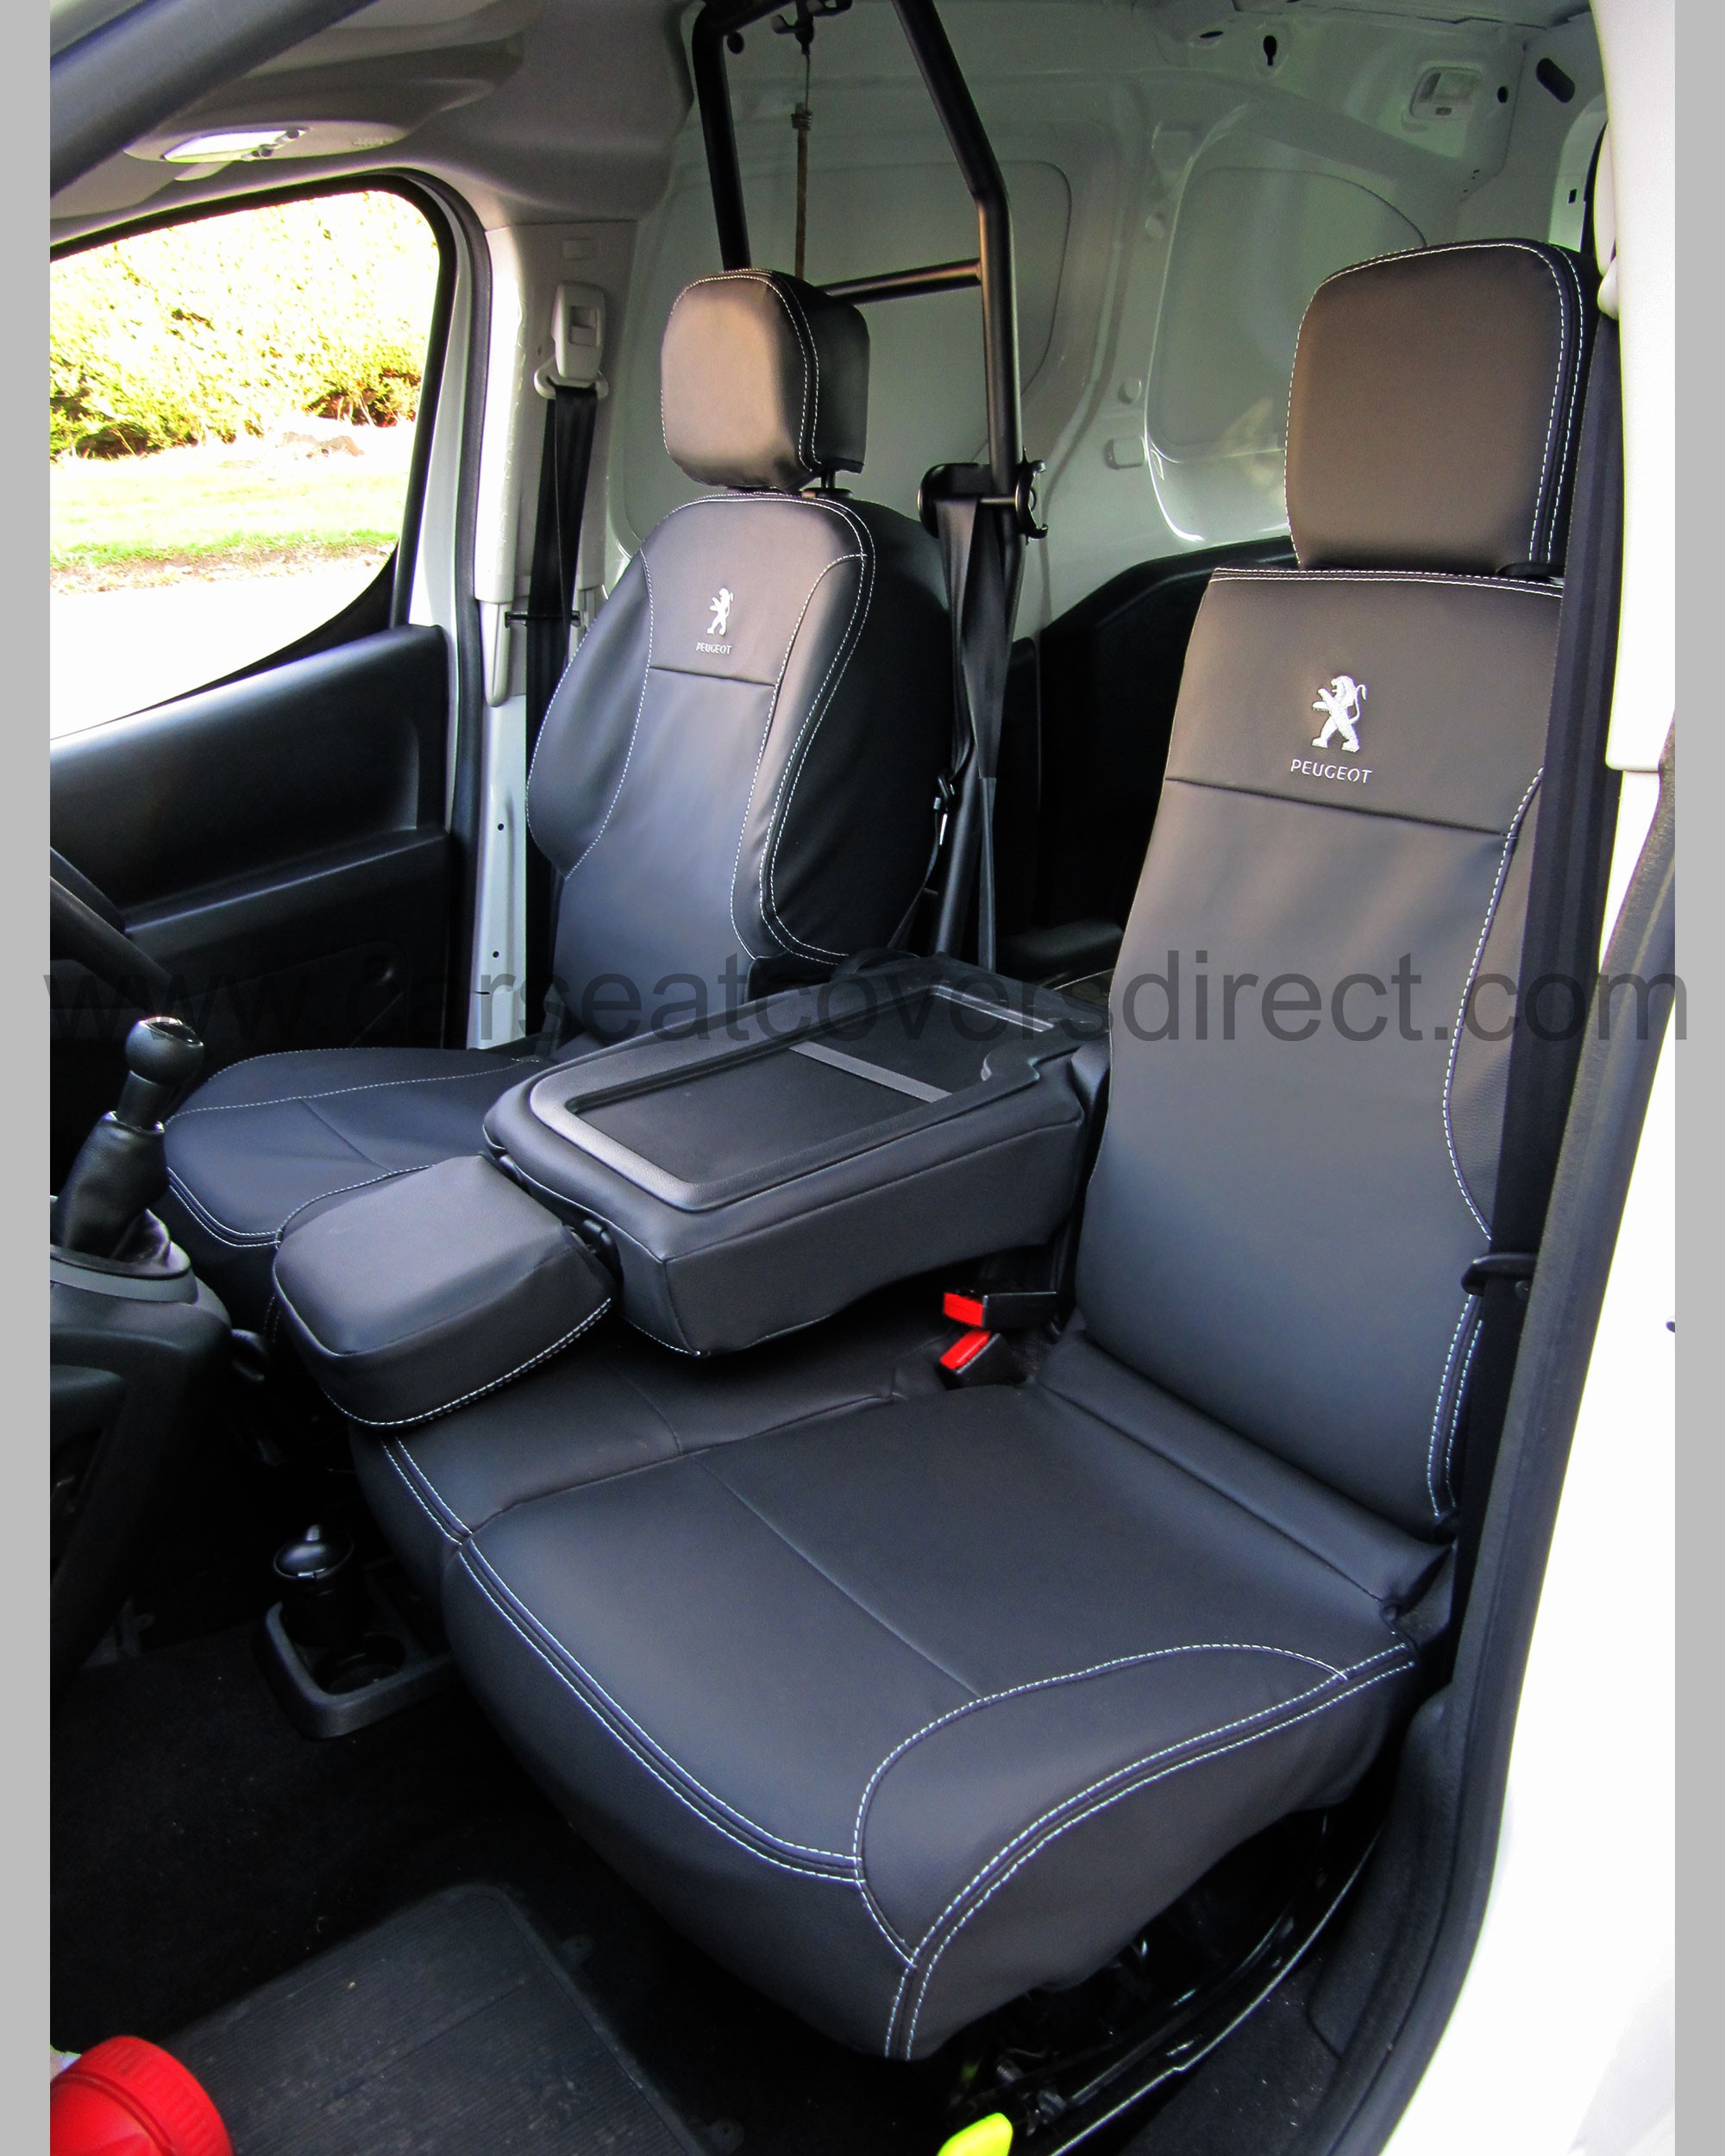 Peugeot Partner Tailored Seat Covers Car Seat Covers Direct ...